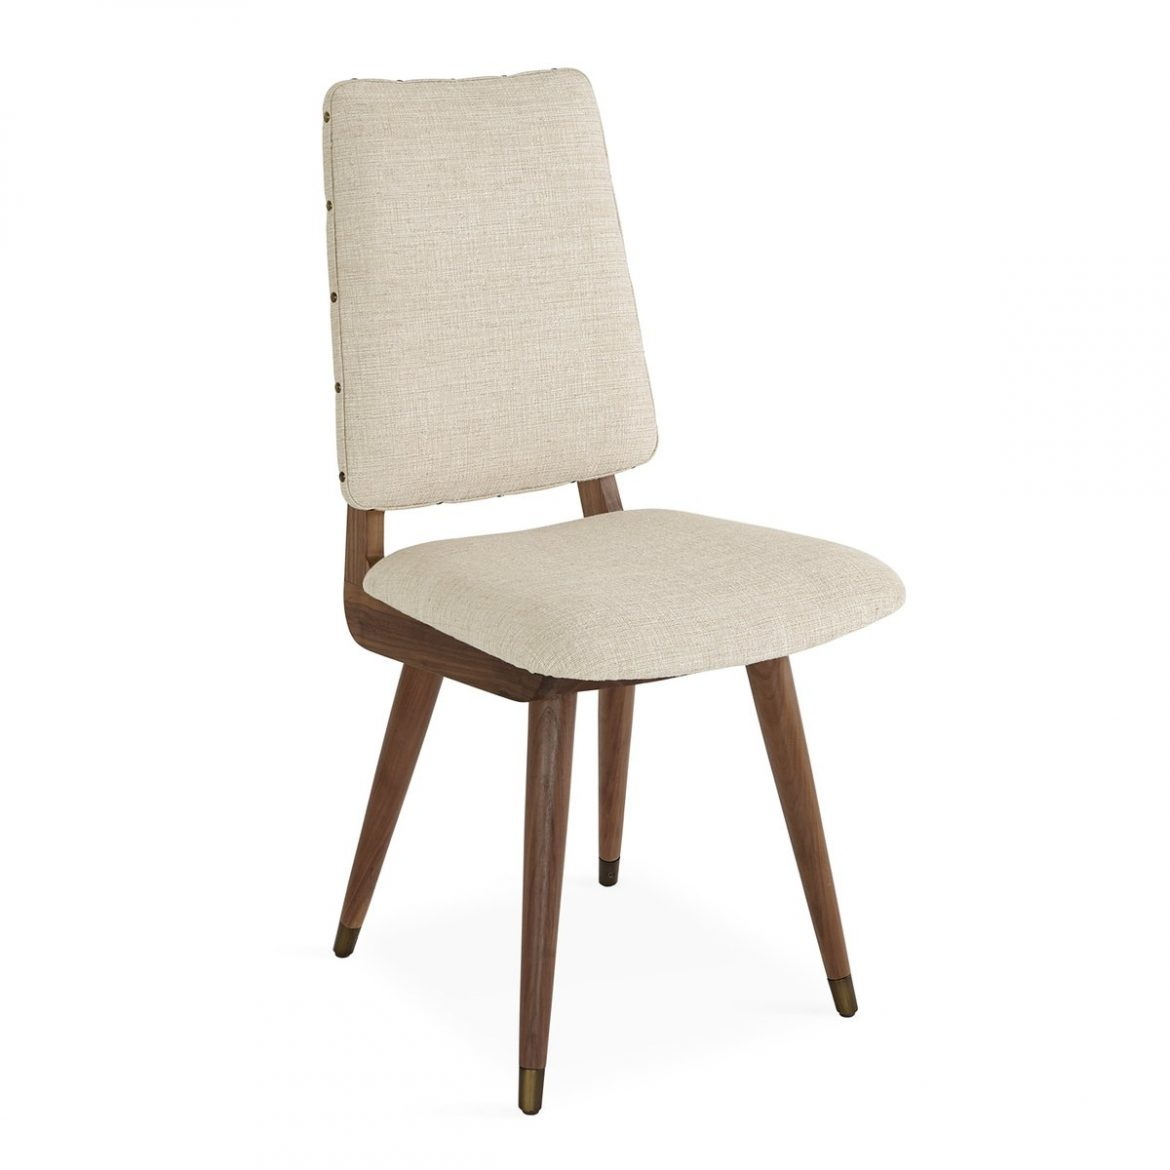 dining chairs 25 Dining Chairs That Fit In Any Design Project – PART II JONATHAN ADLER